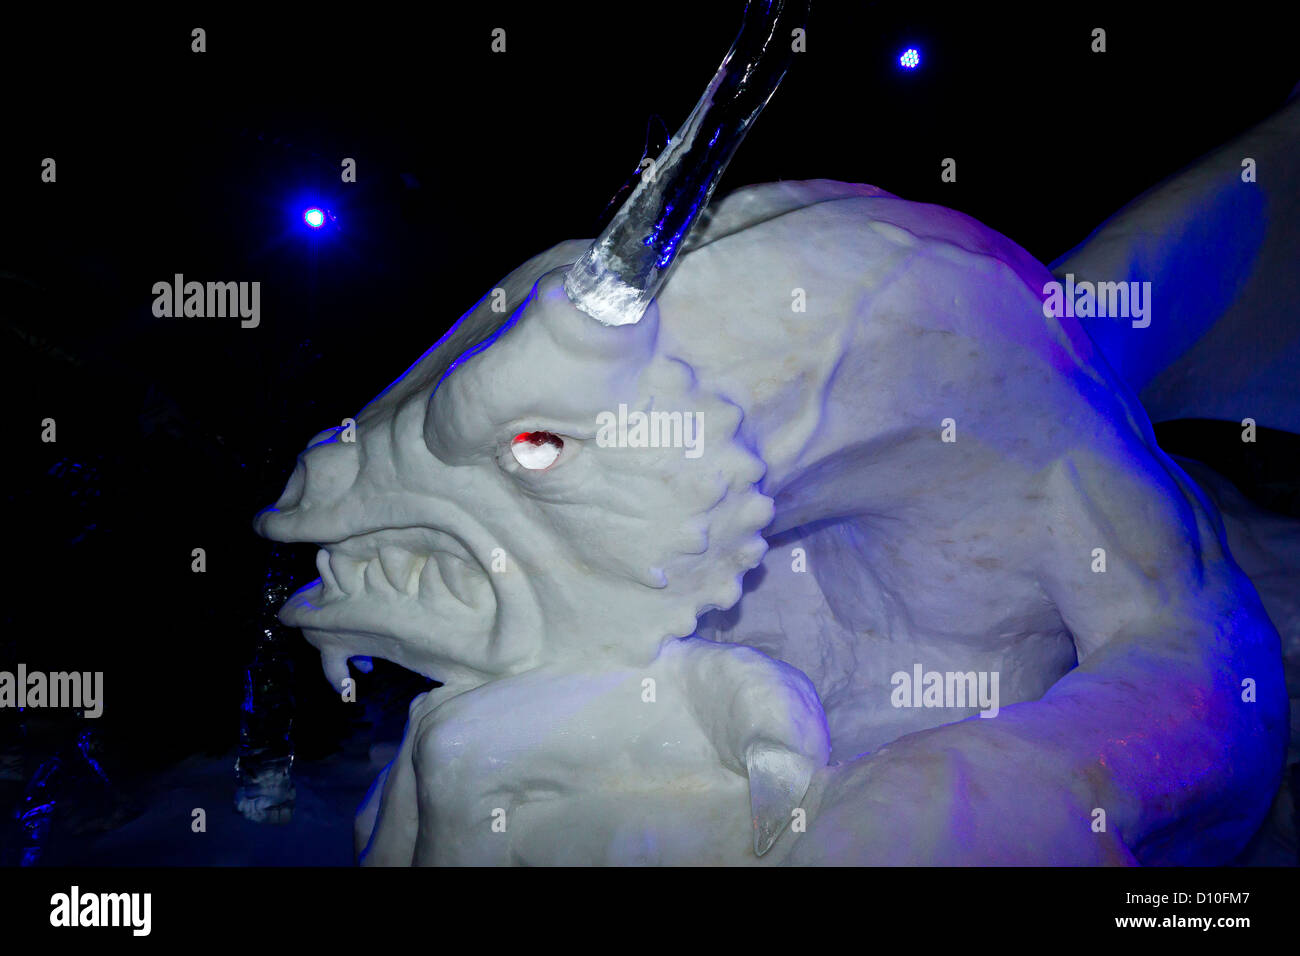 Carved Ice Sculpture Of A Dragon In The ice Kingdom At The Winter Wonderland Hyde Park London, England, UK Stock Photo